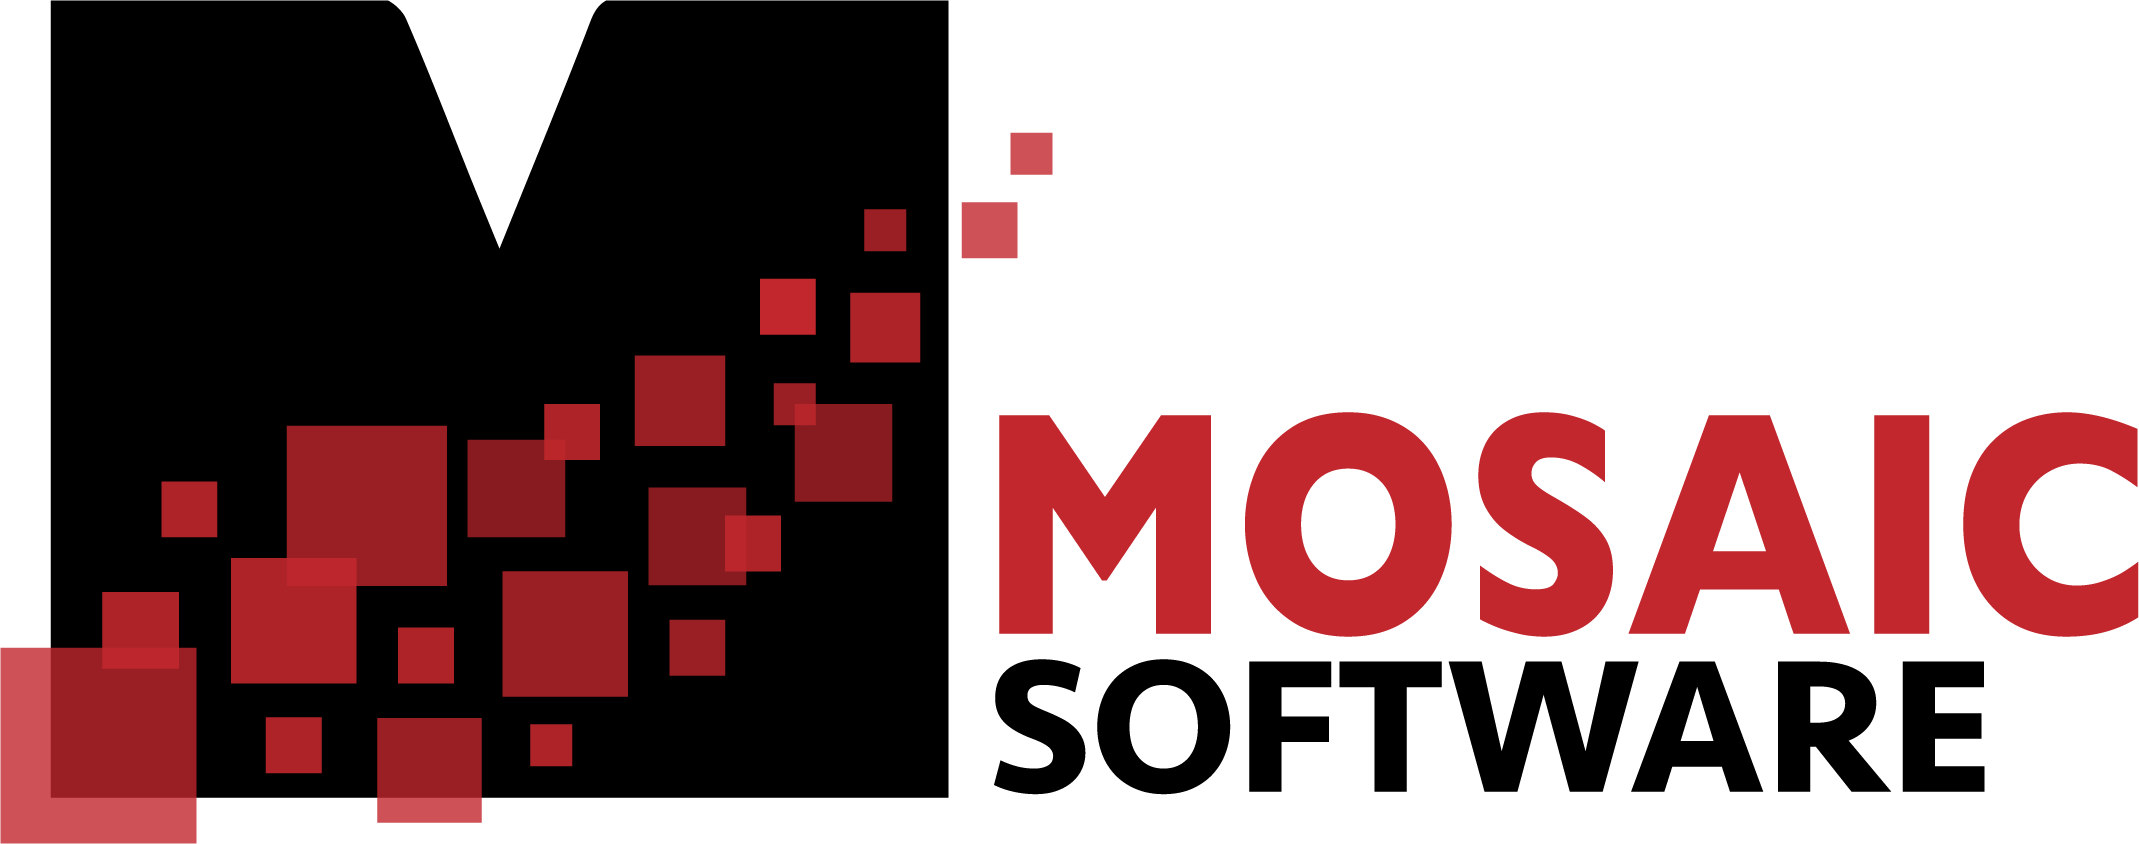 Mosaic Software